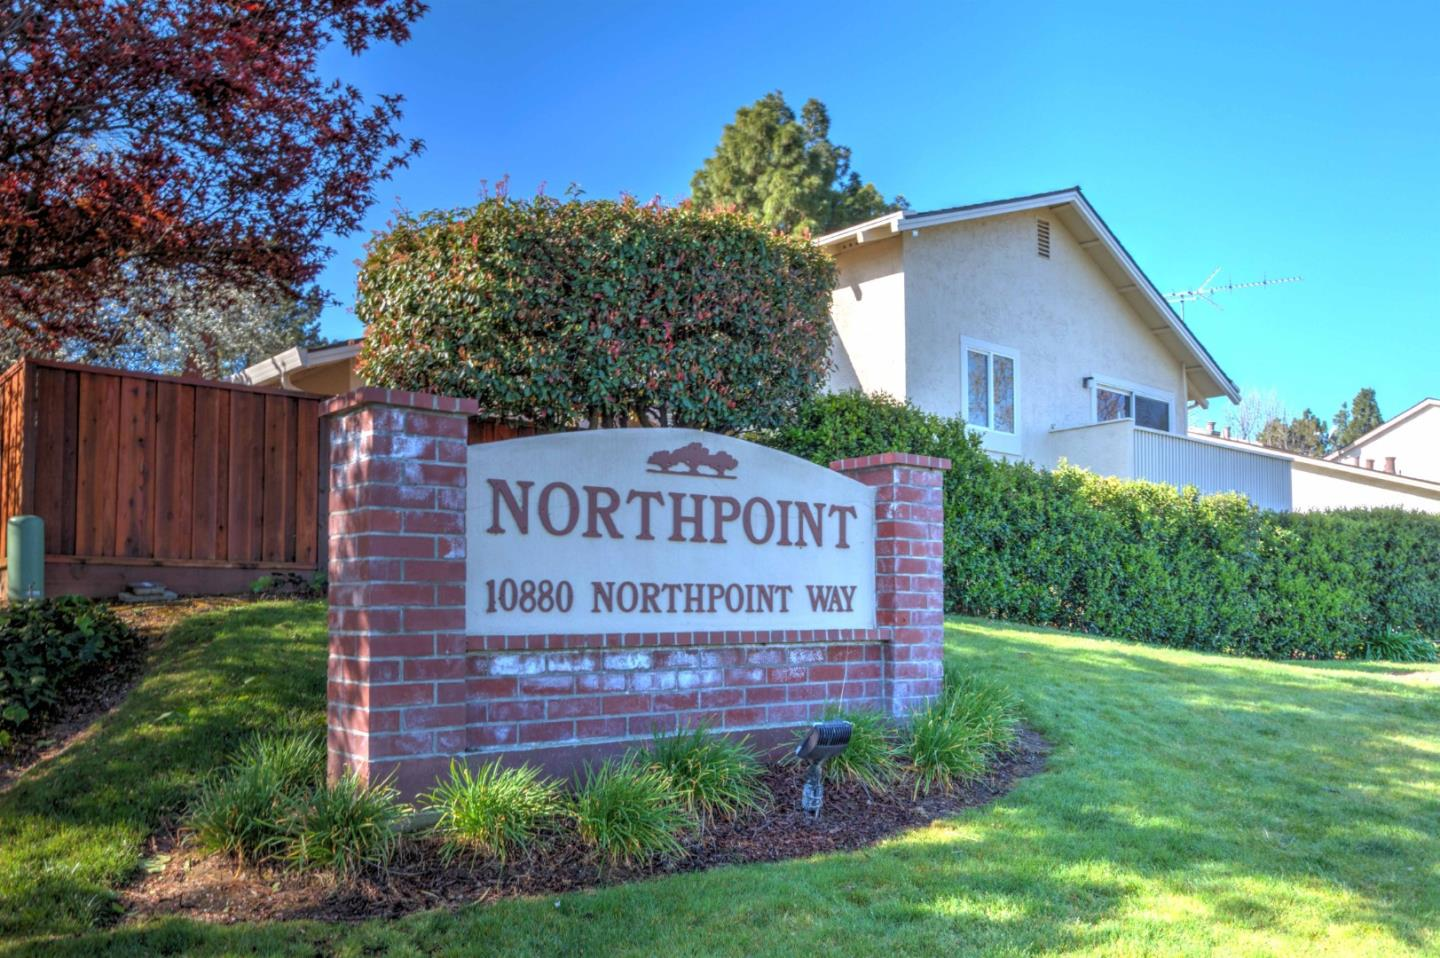 Spacious Beautifully Remodeled Cupertino Townhome in highly desired North Point Community. NORTHEAST Facing. Good location in the complex! Exceptional split level open floor plan.  Skylight in spacious living room, abundant natural light vaulted ceilings. New recessed lighting throughout, laminate flooring, double paned doors and window. Nice kitchen, polished cabinets, granite counters, New stainless appliances Refrigerator, Oven-Stove, Microwave, Dishwasher abundant storage. Master suite with private balcony and new Double paned door, closet organizer. New Vanities, mirrors, lights, sinks, toilets, all bathroom fixtures. Cupertino schools- L,P Collins Elementary, Lawson Middle, Fremont High. Walking distance to both Apple Park and Apple Infinite Loop campuses. Easy access to freeways- 280, 85 to 101, minutes to Google and Facebook. Great amenities and walking distance to Safeway and shopping.